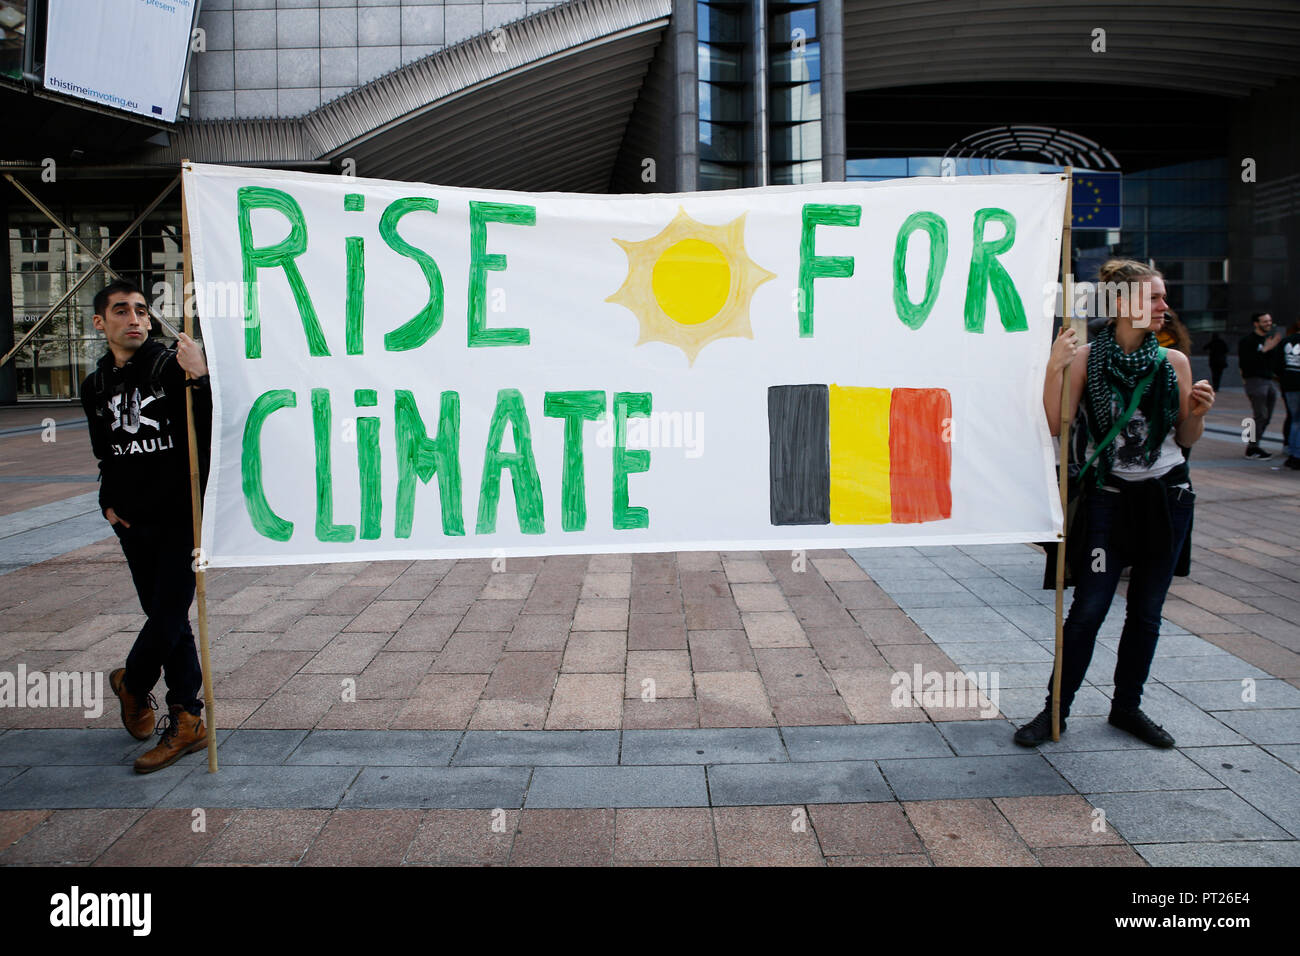 Brussels, Belgium. 6th Oct. 2018.Activists hold placards and chant slogans during a demonstration to demand immediate an action on climate change in front of European Parliament. Alexandros Michailidis/Alamy Live News Stock Photo